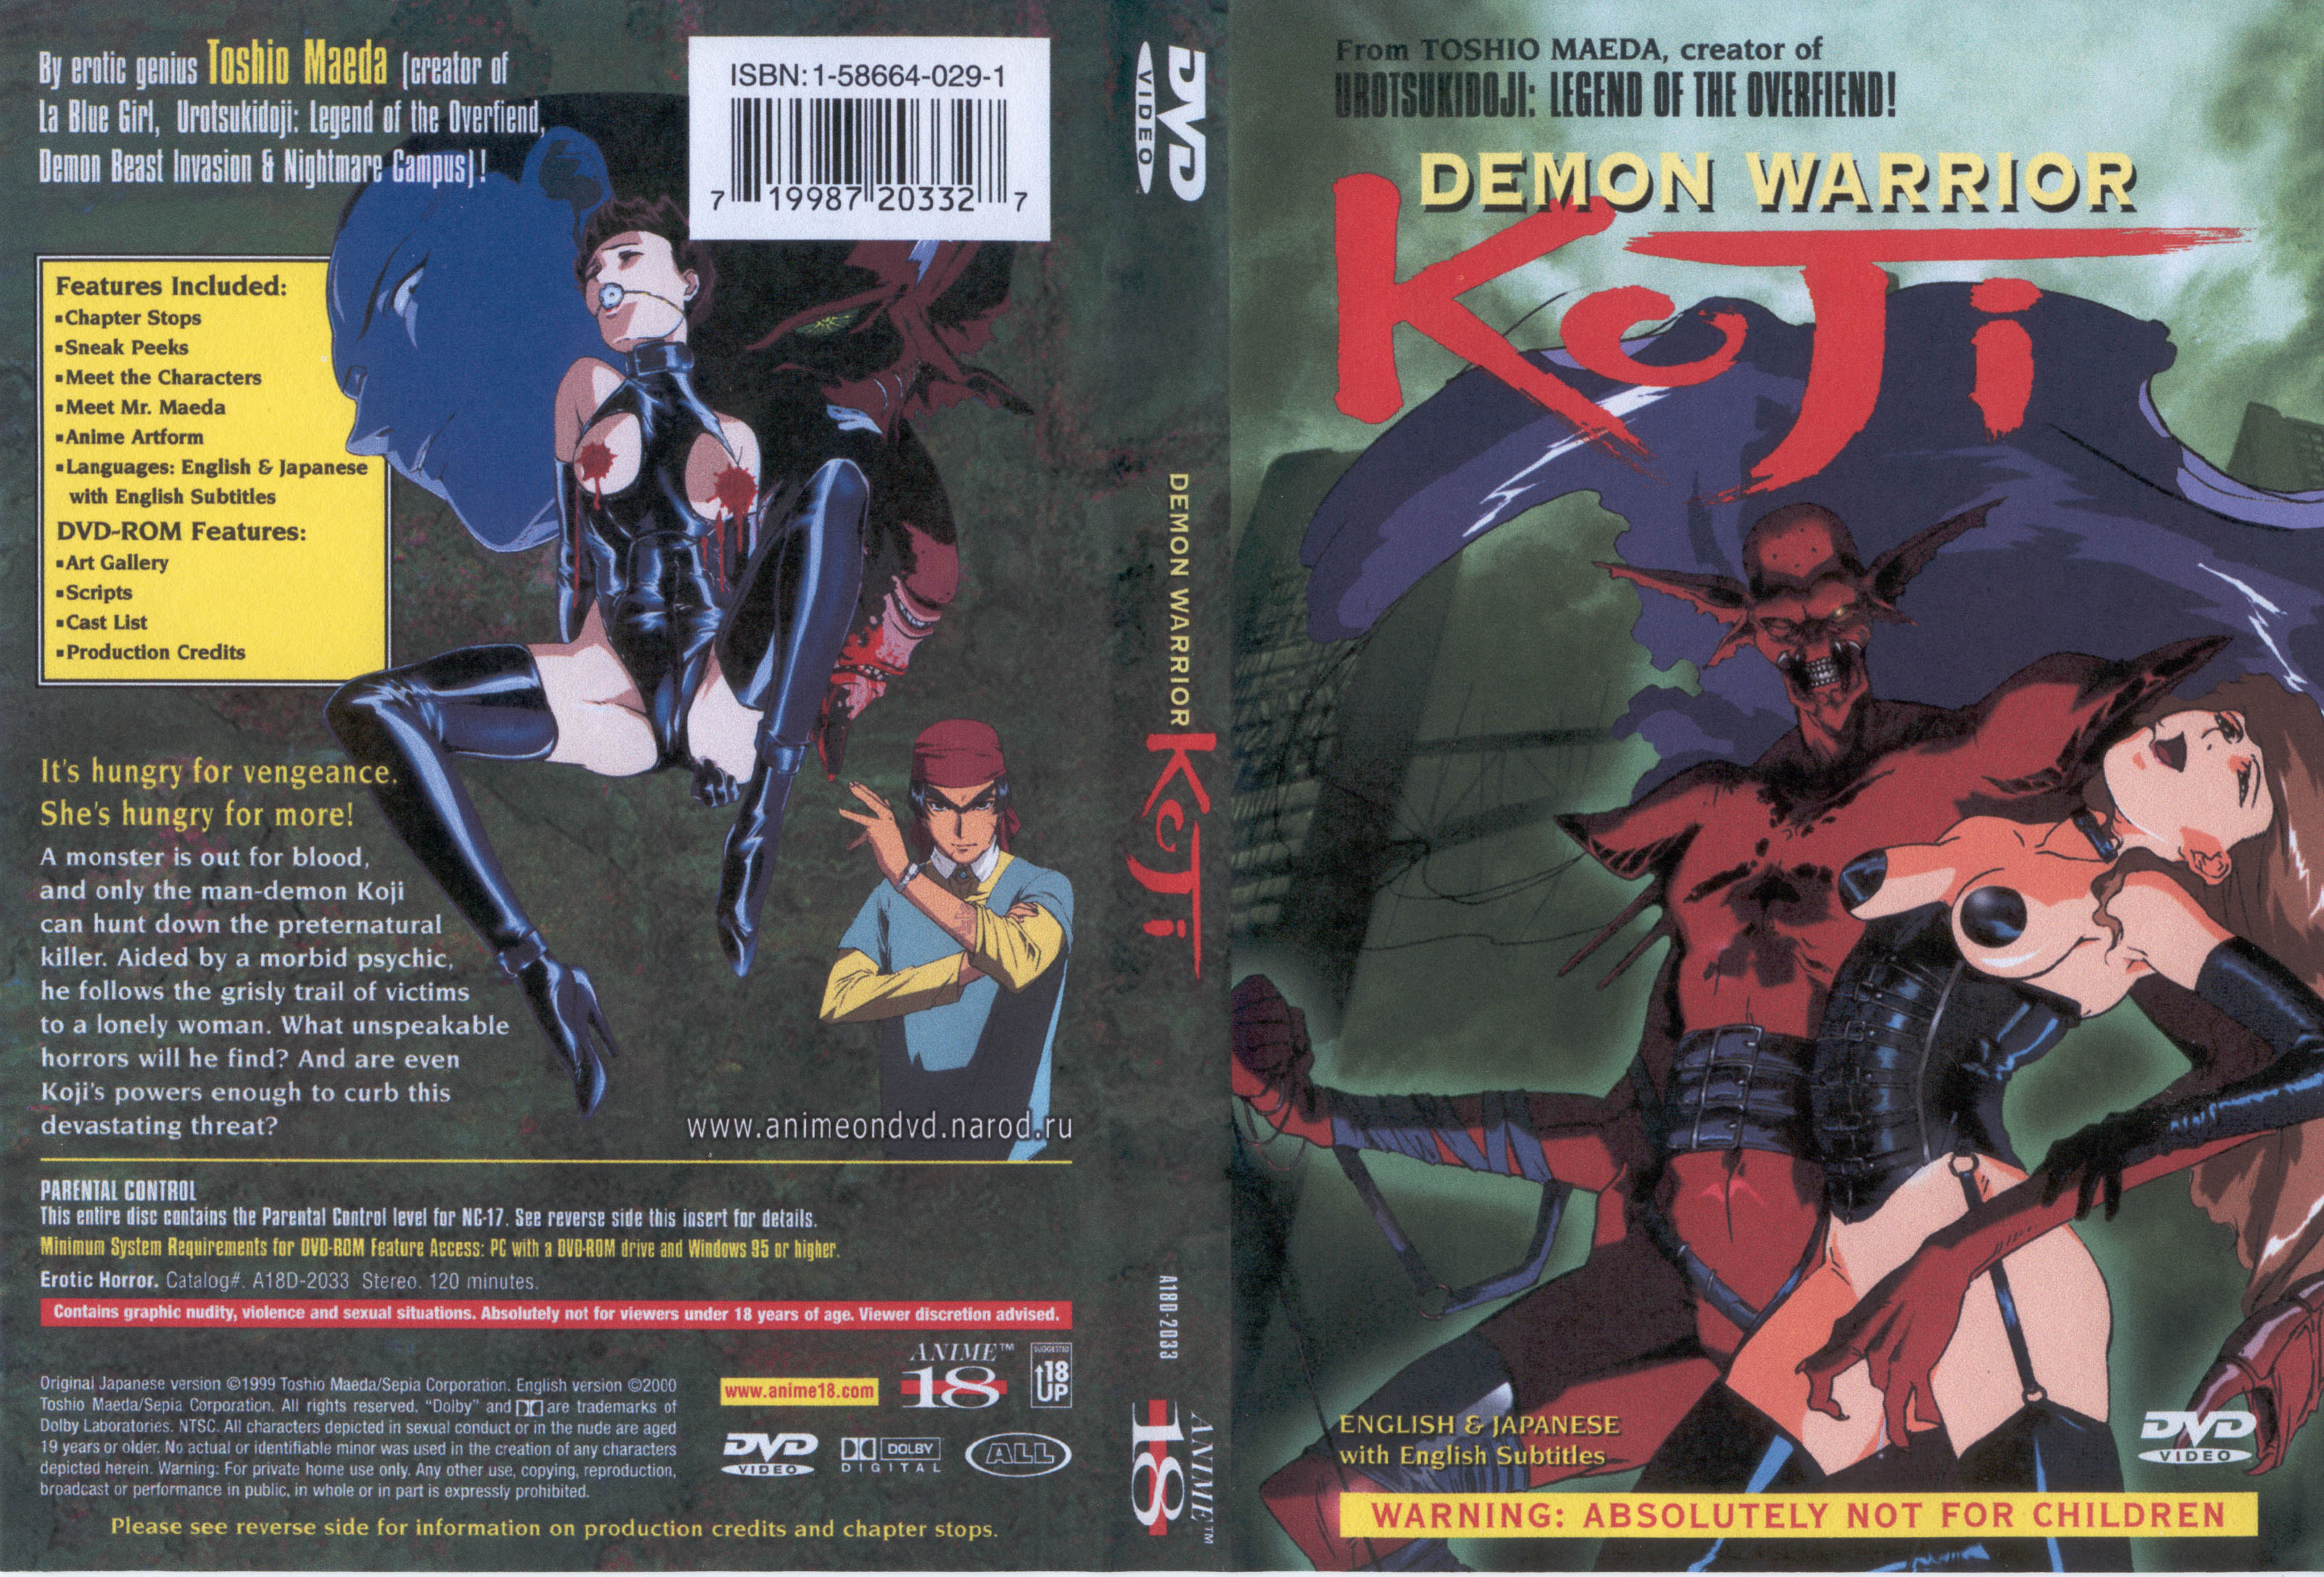 Demon warrior koji episode erotica movies